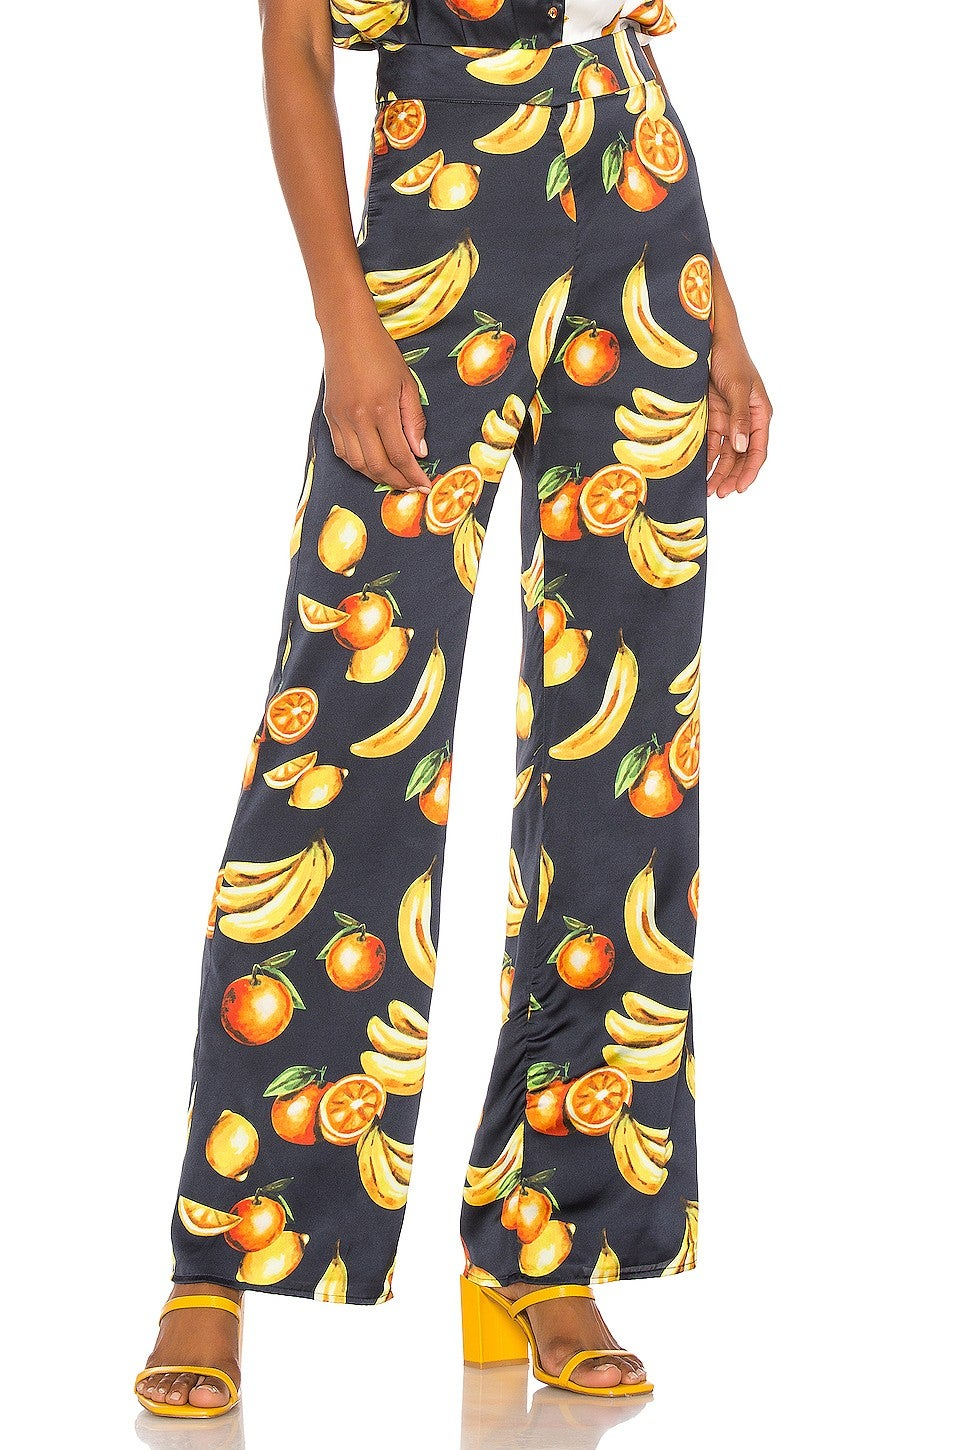 Song of Style blaire fruit print pant